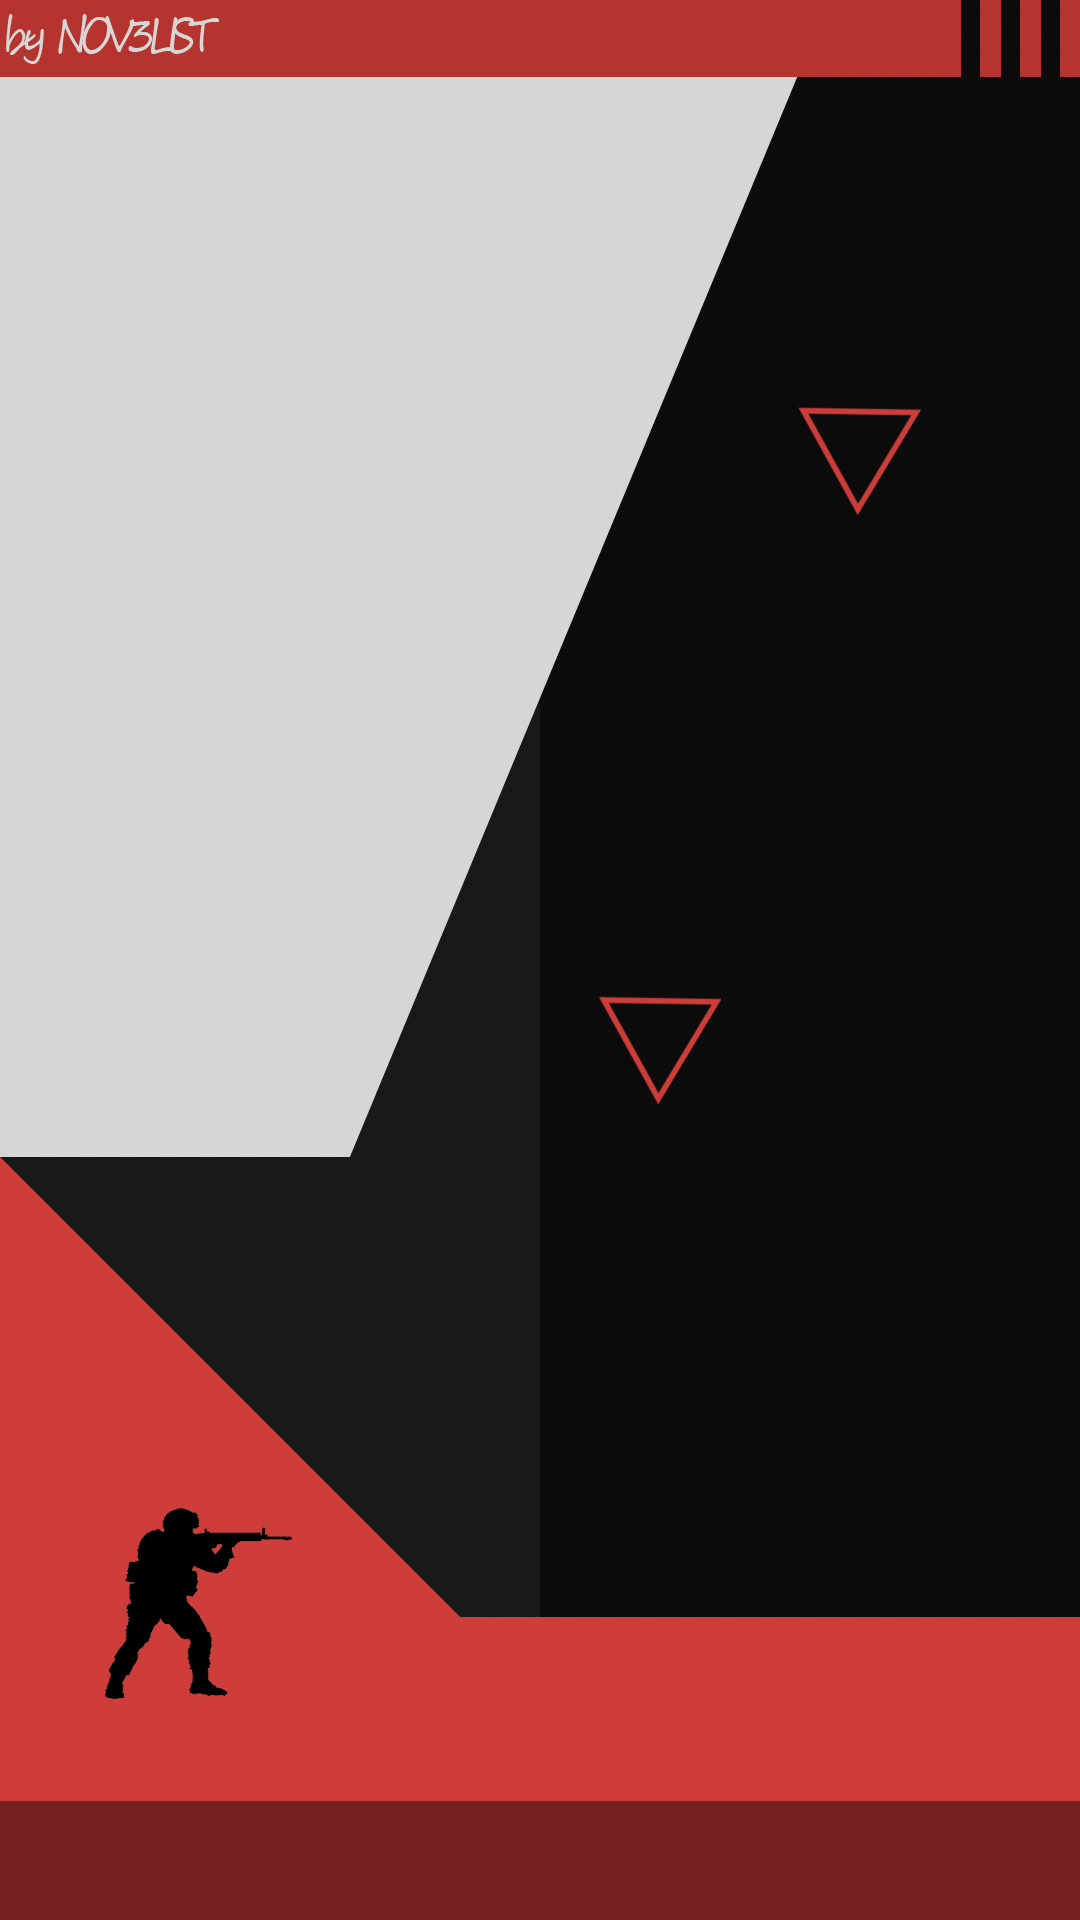 """UGCI made an """"Cyrex"""" themed Smartphone Wallpaper! (1080x1920px) What do you  think?"""